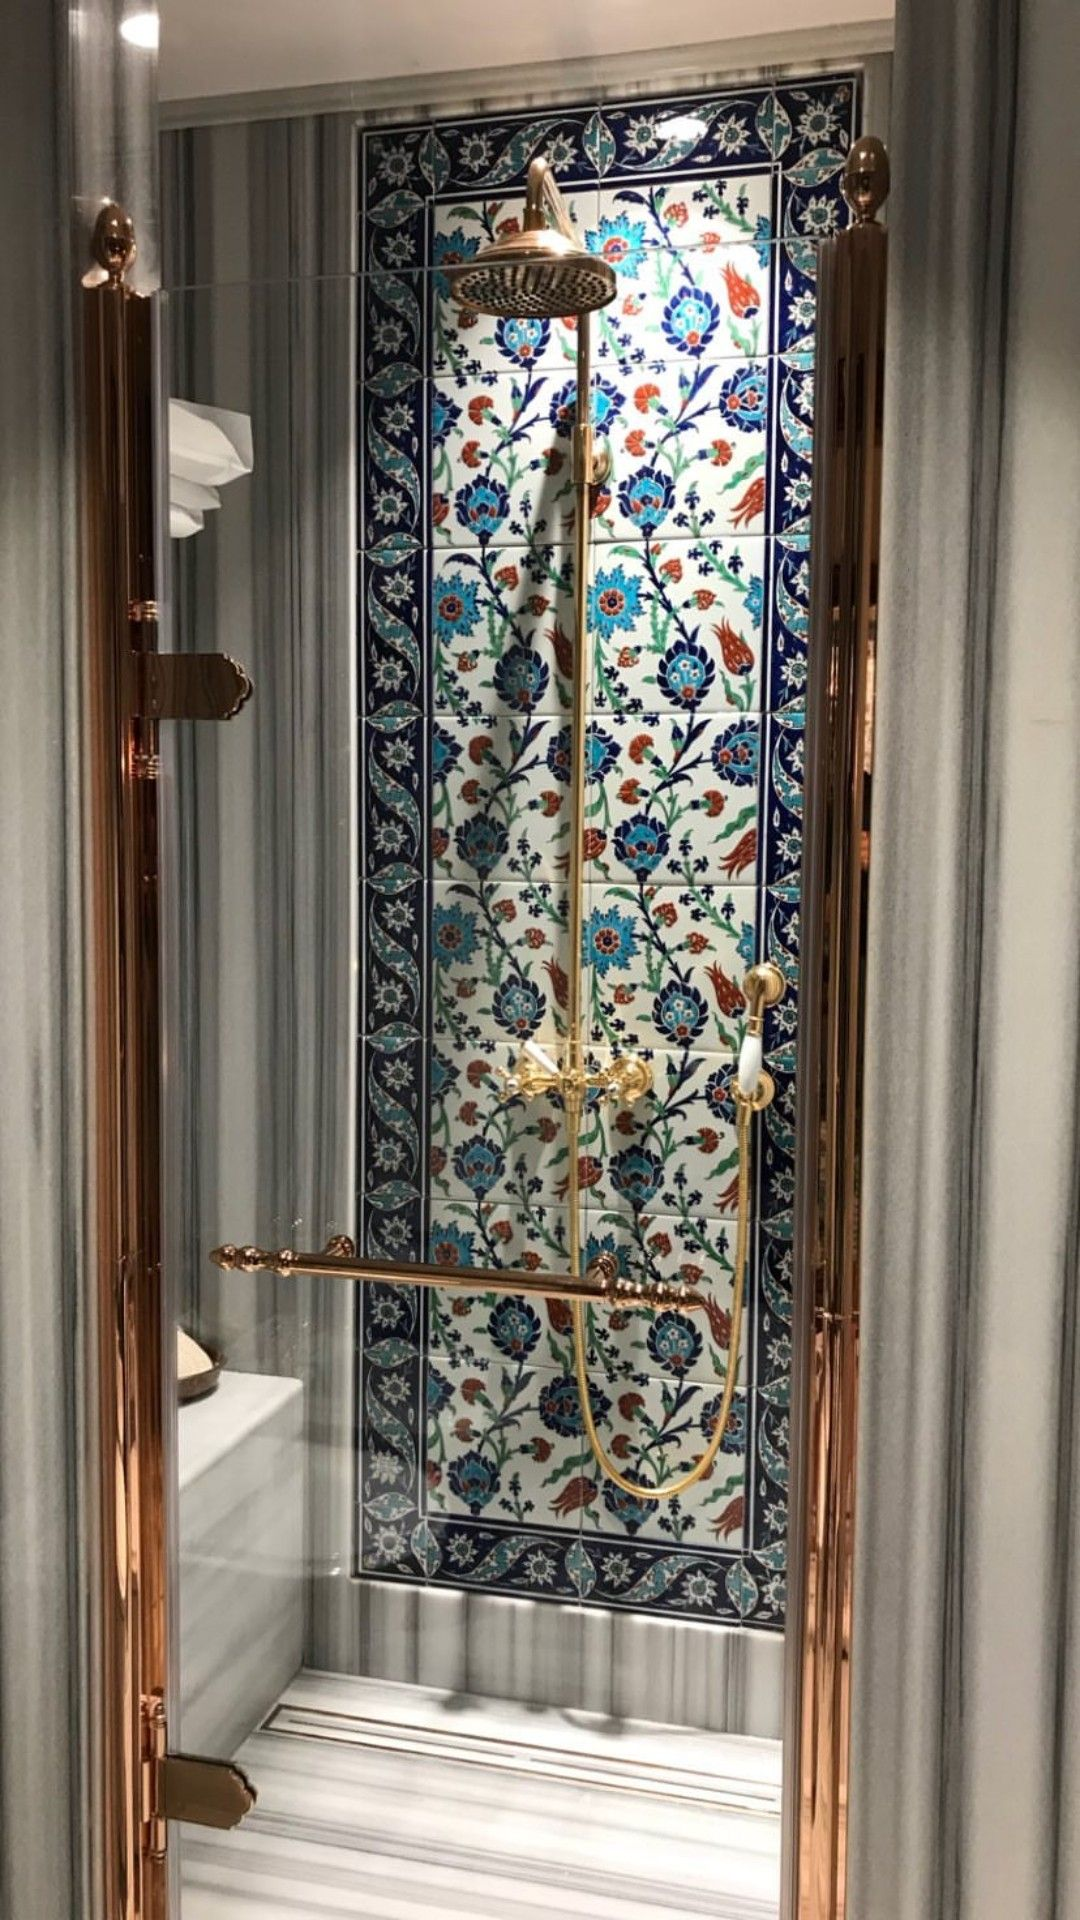 Tiled Shower With Brass Hardware Bathroom Bathroomdecor Tiles Interiordesign Opulentmemory Bathroom Wall Decor Beautiful Bathrooms Bathroom Decor